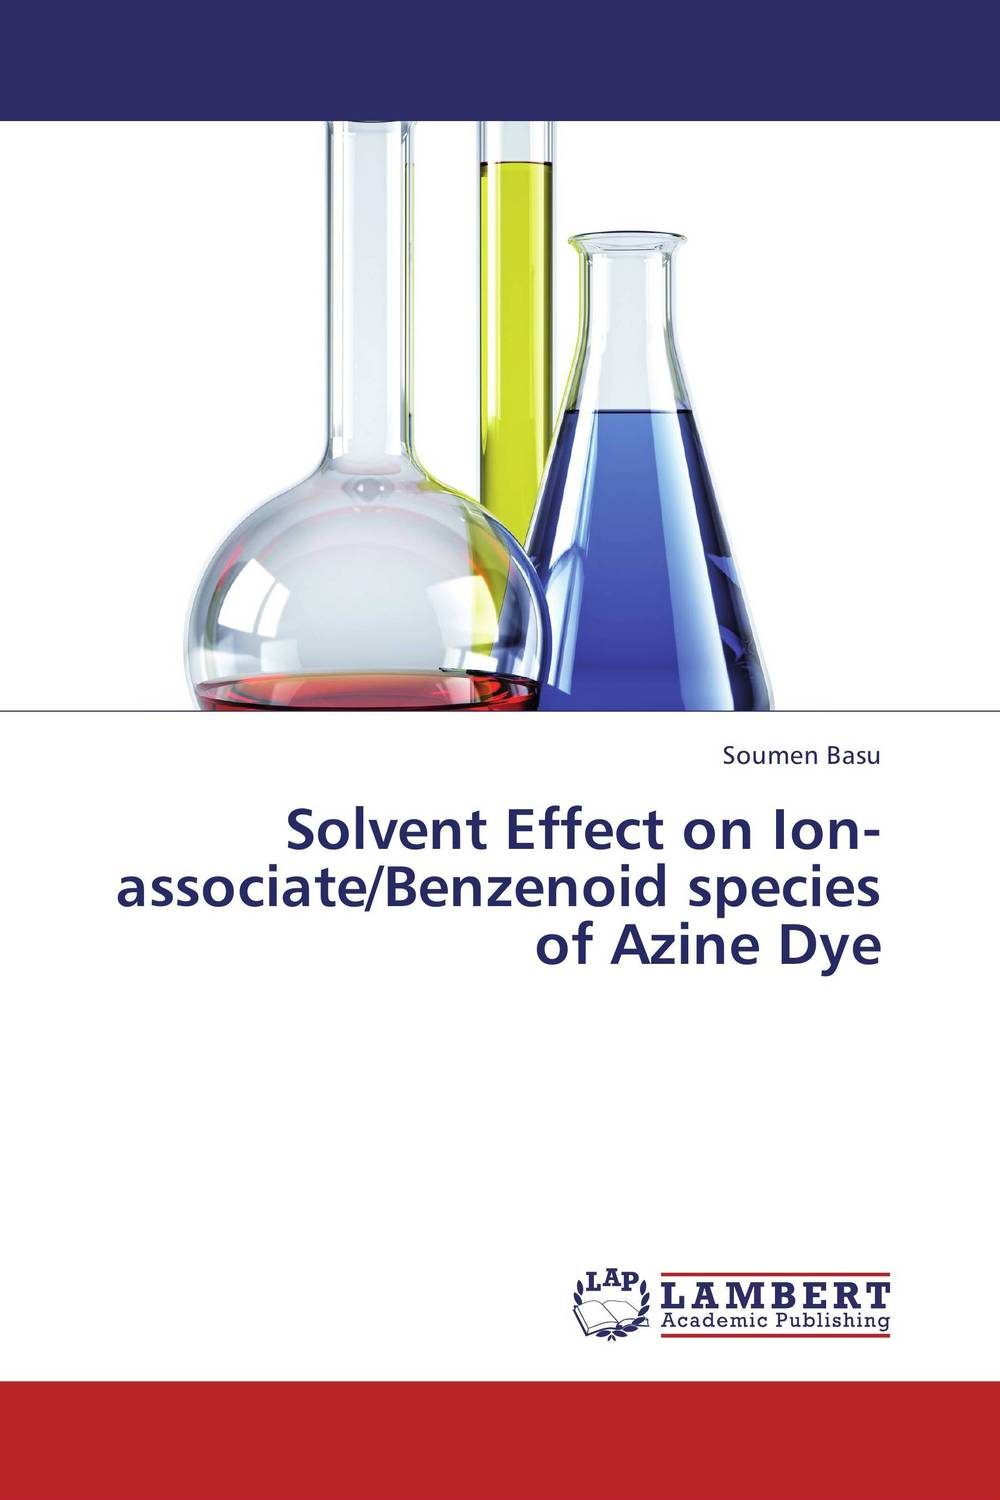 Solvent Effect on Ion-associate/Benzenoid species of Azine Dye momentum часы momentum 1m sp17ps0 коллекция heatwave